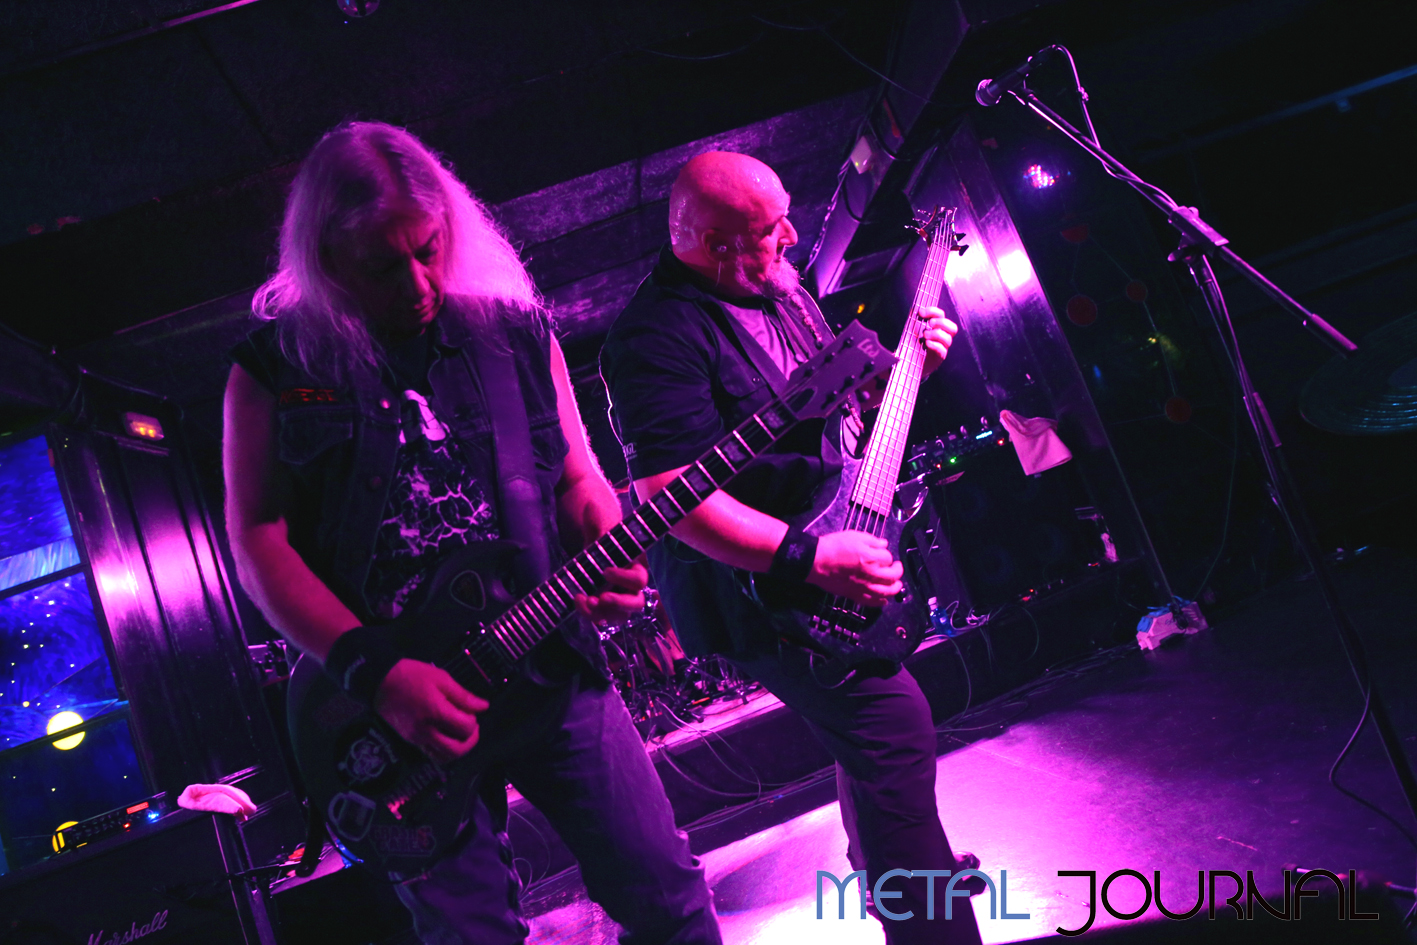 refuge - metal journal 2018 pic 5